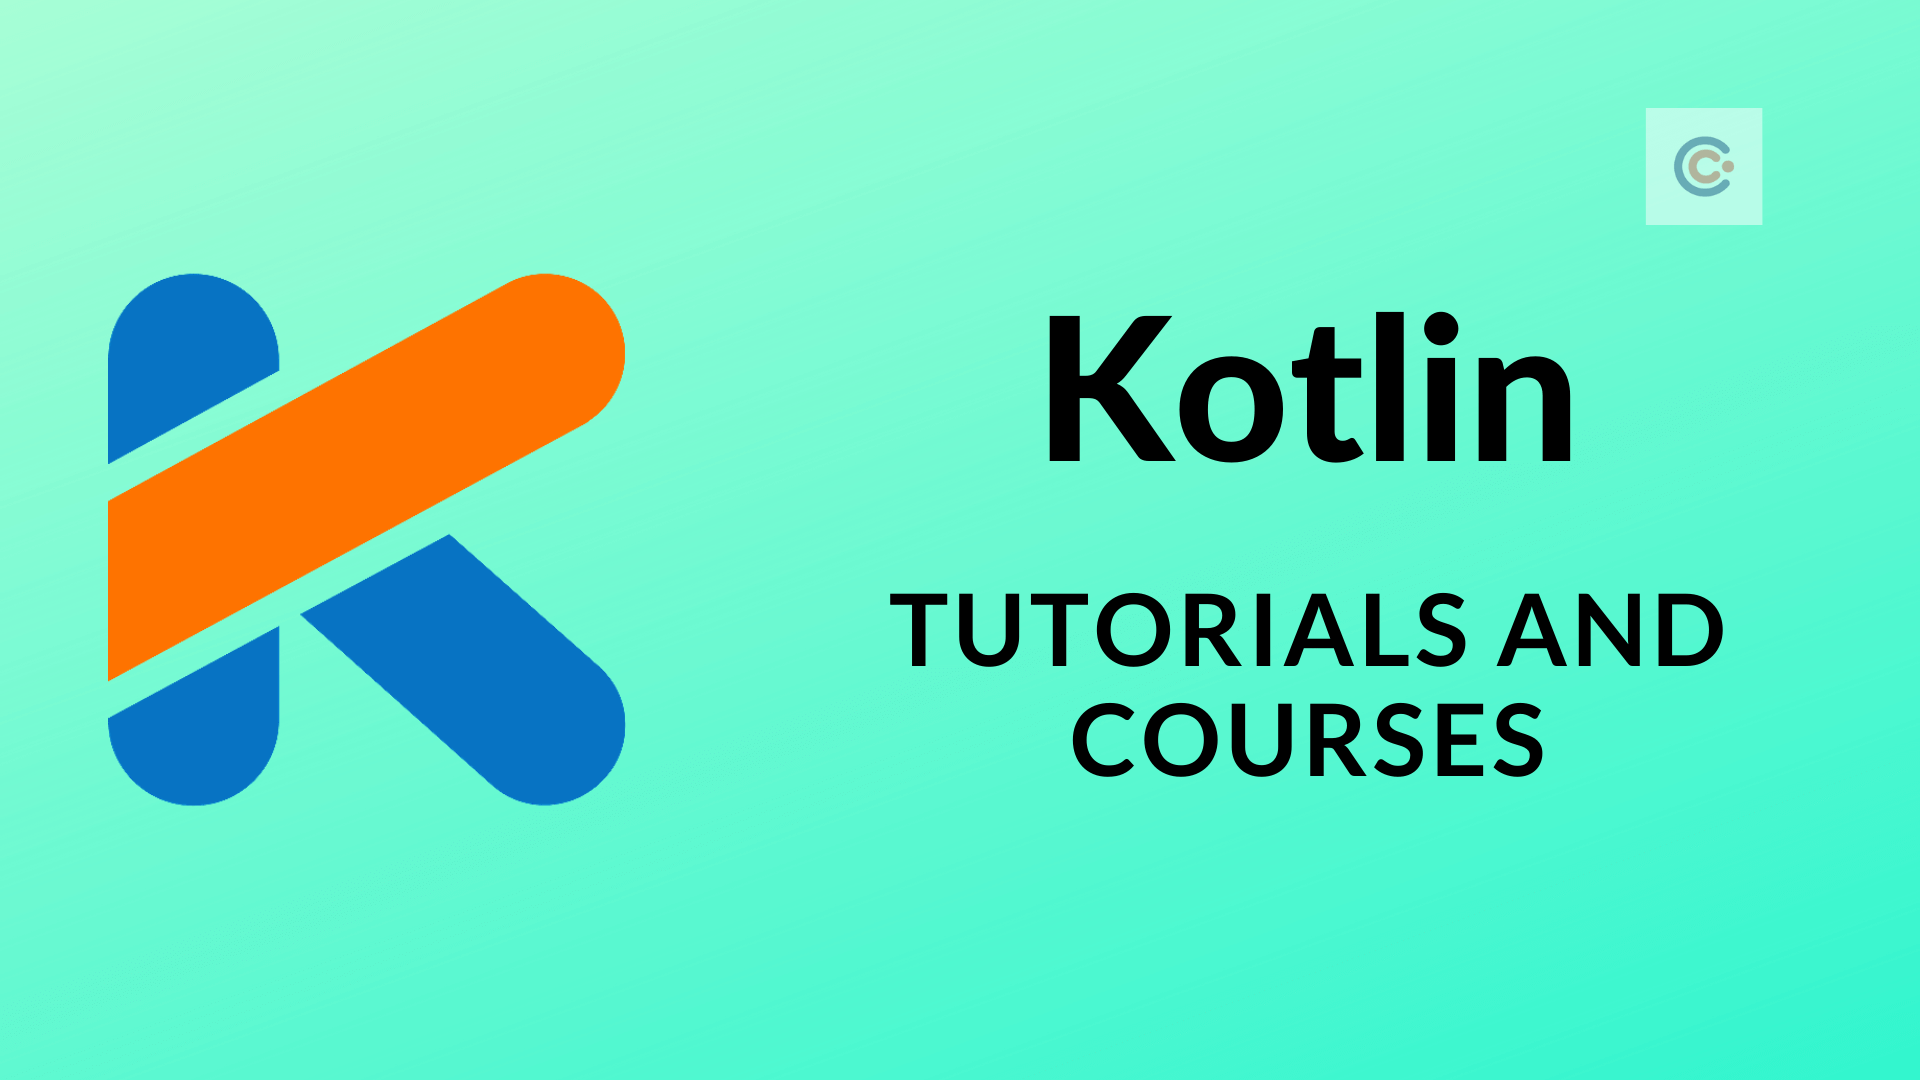 12 Best Kotlin Tutorials & Courses - Learn Kotlin Online